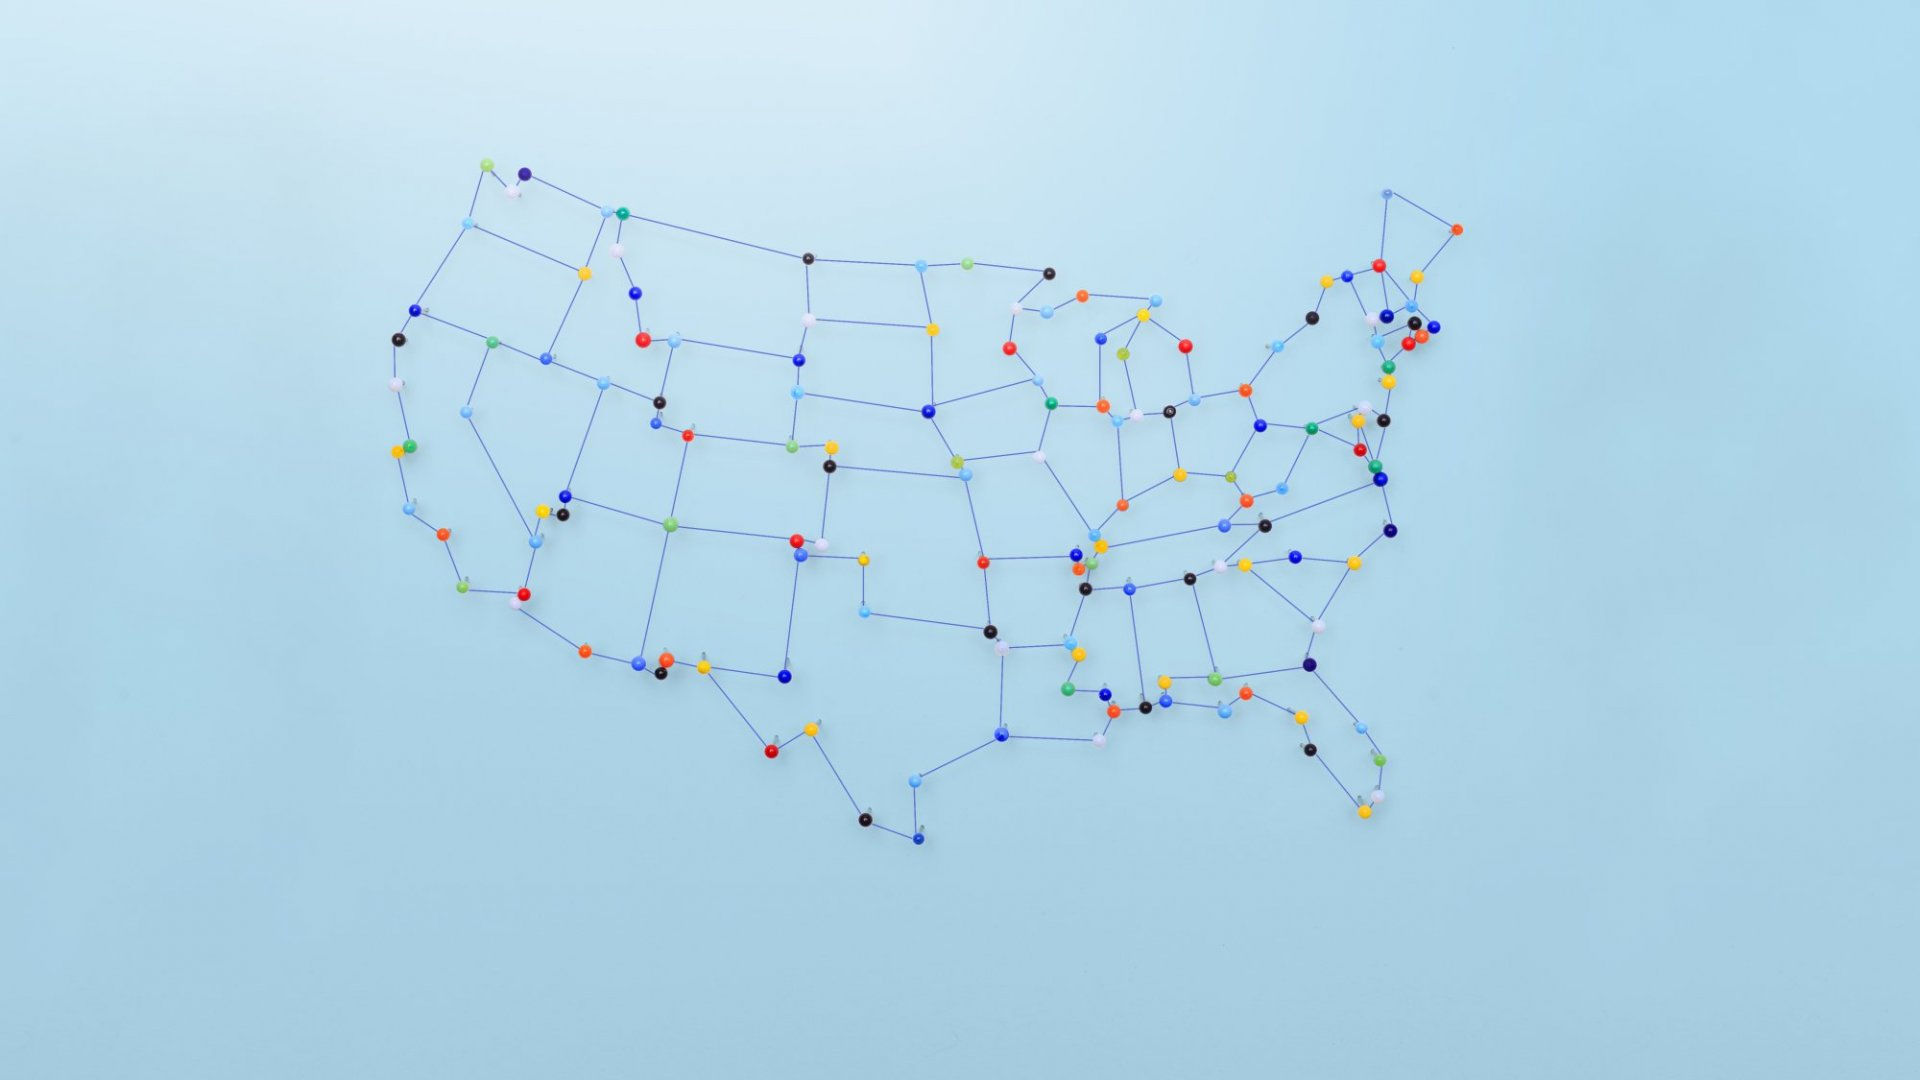 Wondering Where to Incorporate Your Business? Consider These 2 States